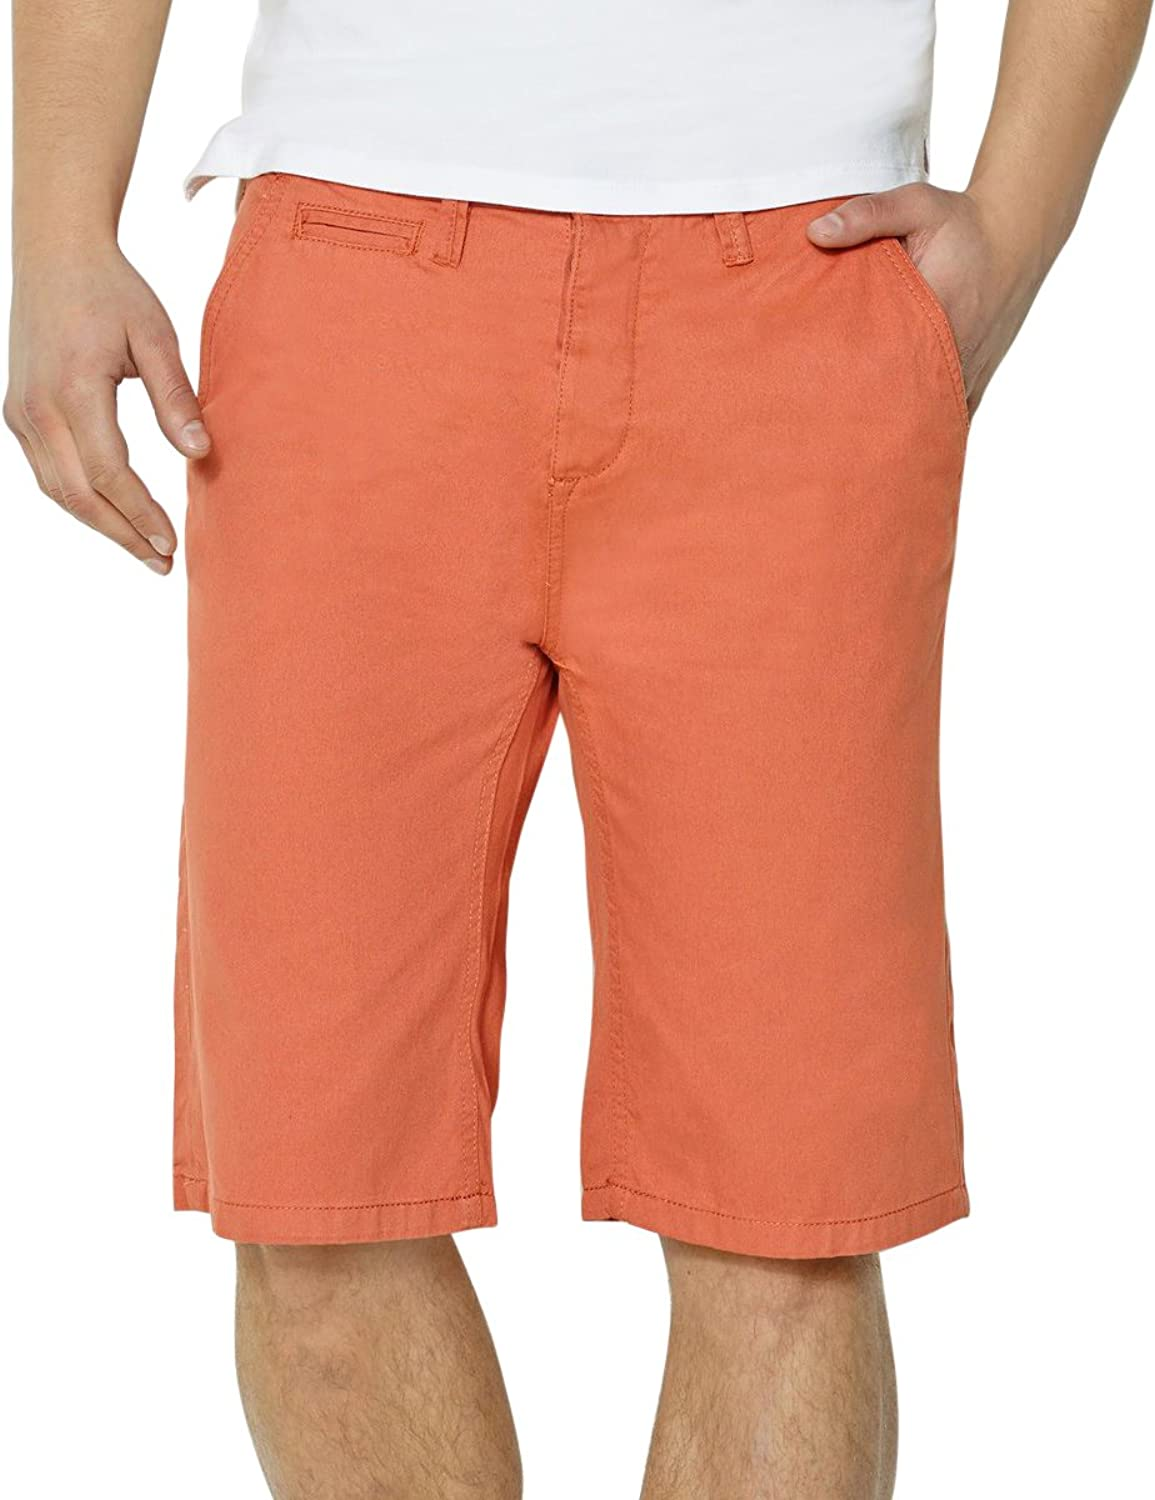 R Edition Shopping Prix Mens Straight-Cut Button Fly Chino Style Bermuda Shorts r edition